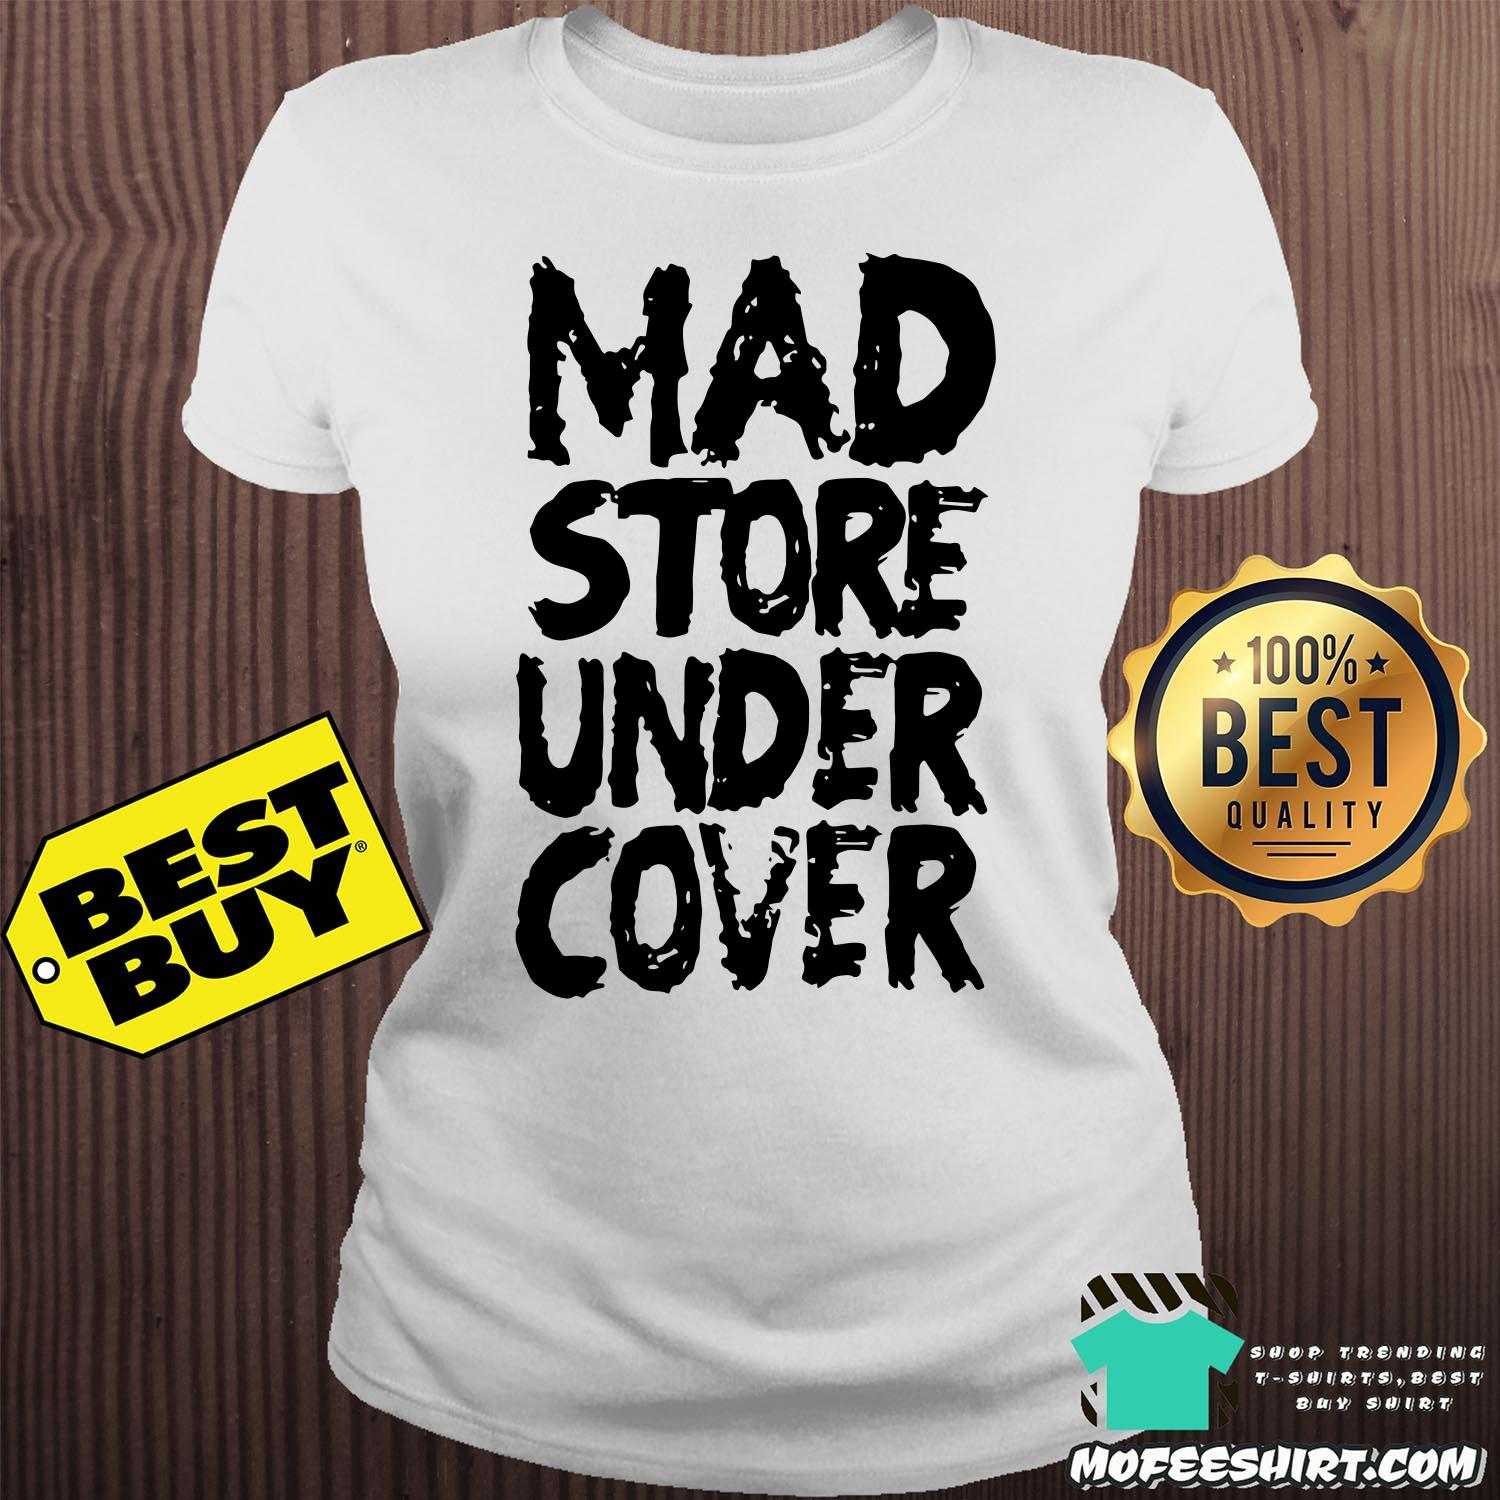 mad store under cover ladies tee -  Mad Store Under Cover shirt